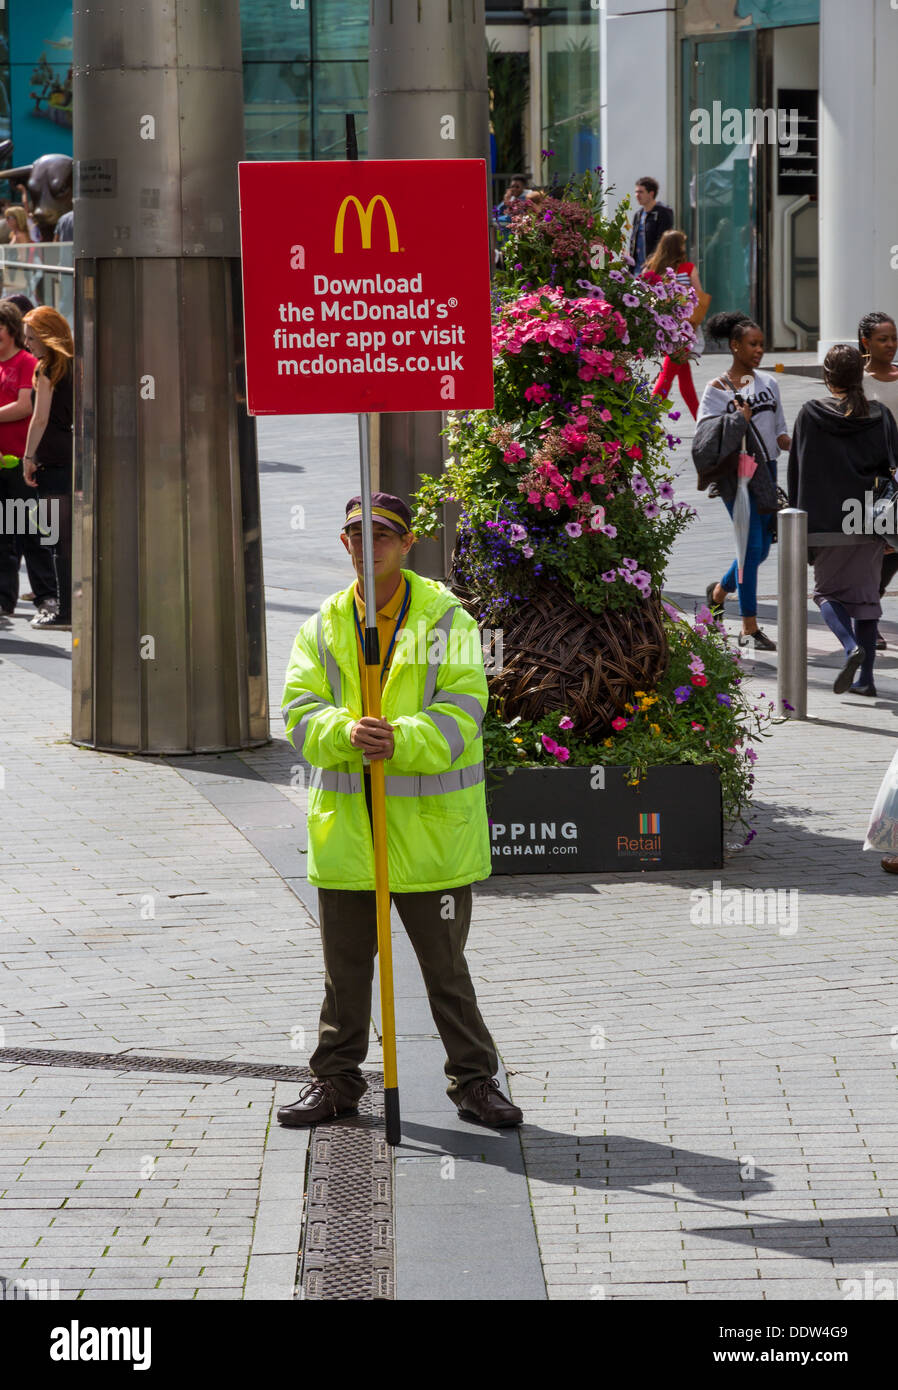 McDonalds worker in Birmingham holding a placard to advertise the McDonalds smartphone app. - Stock Image